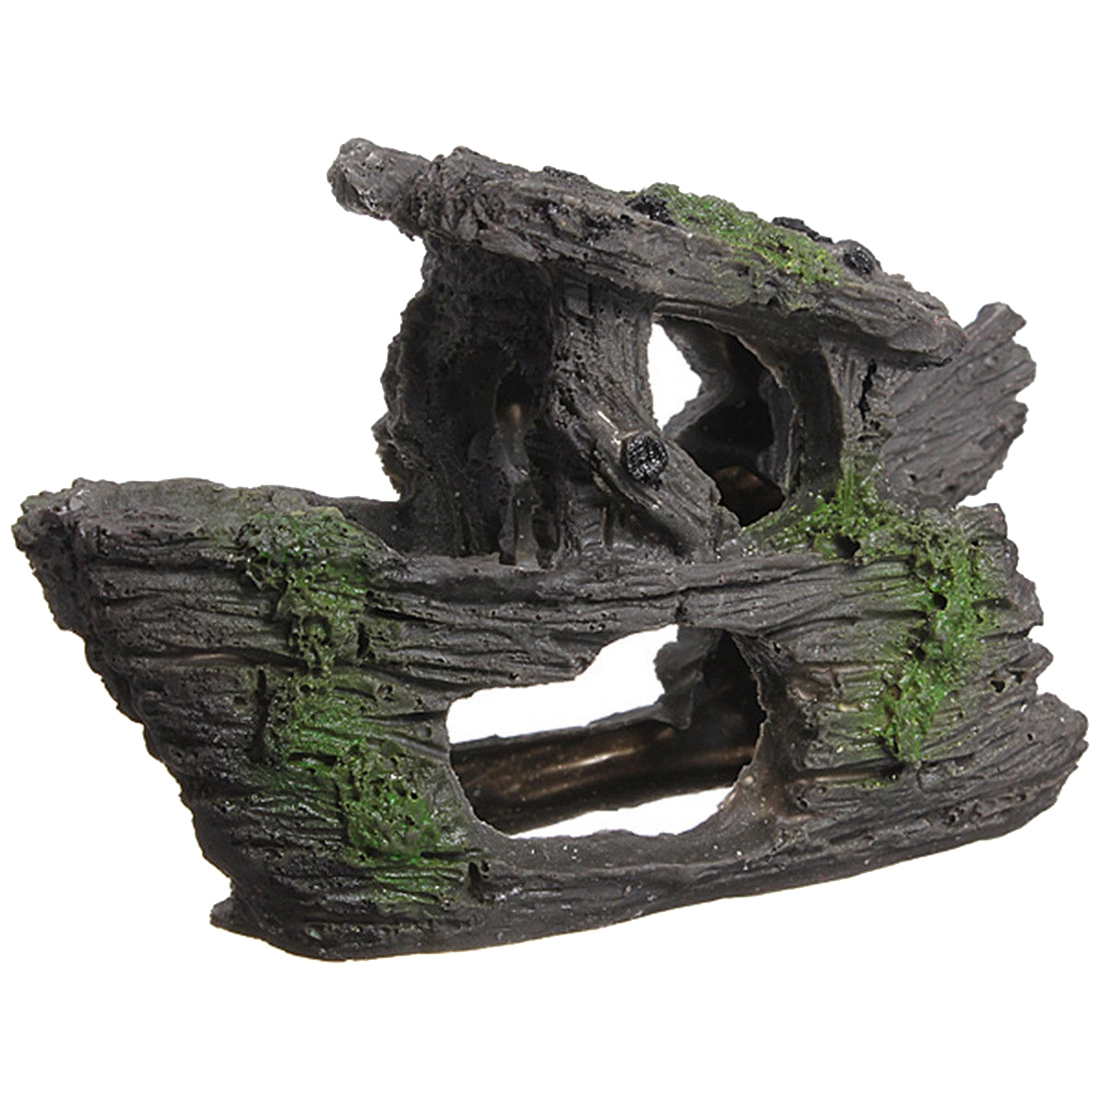 Aquarium decoration rock grotto cave fish tank terrarium for Aquarium decoration paint